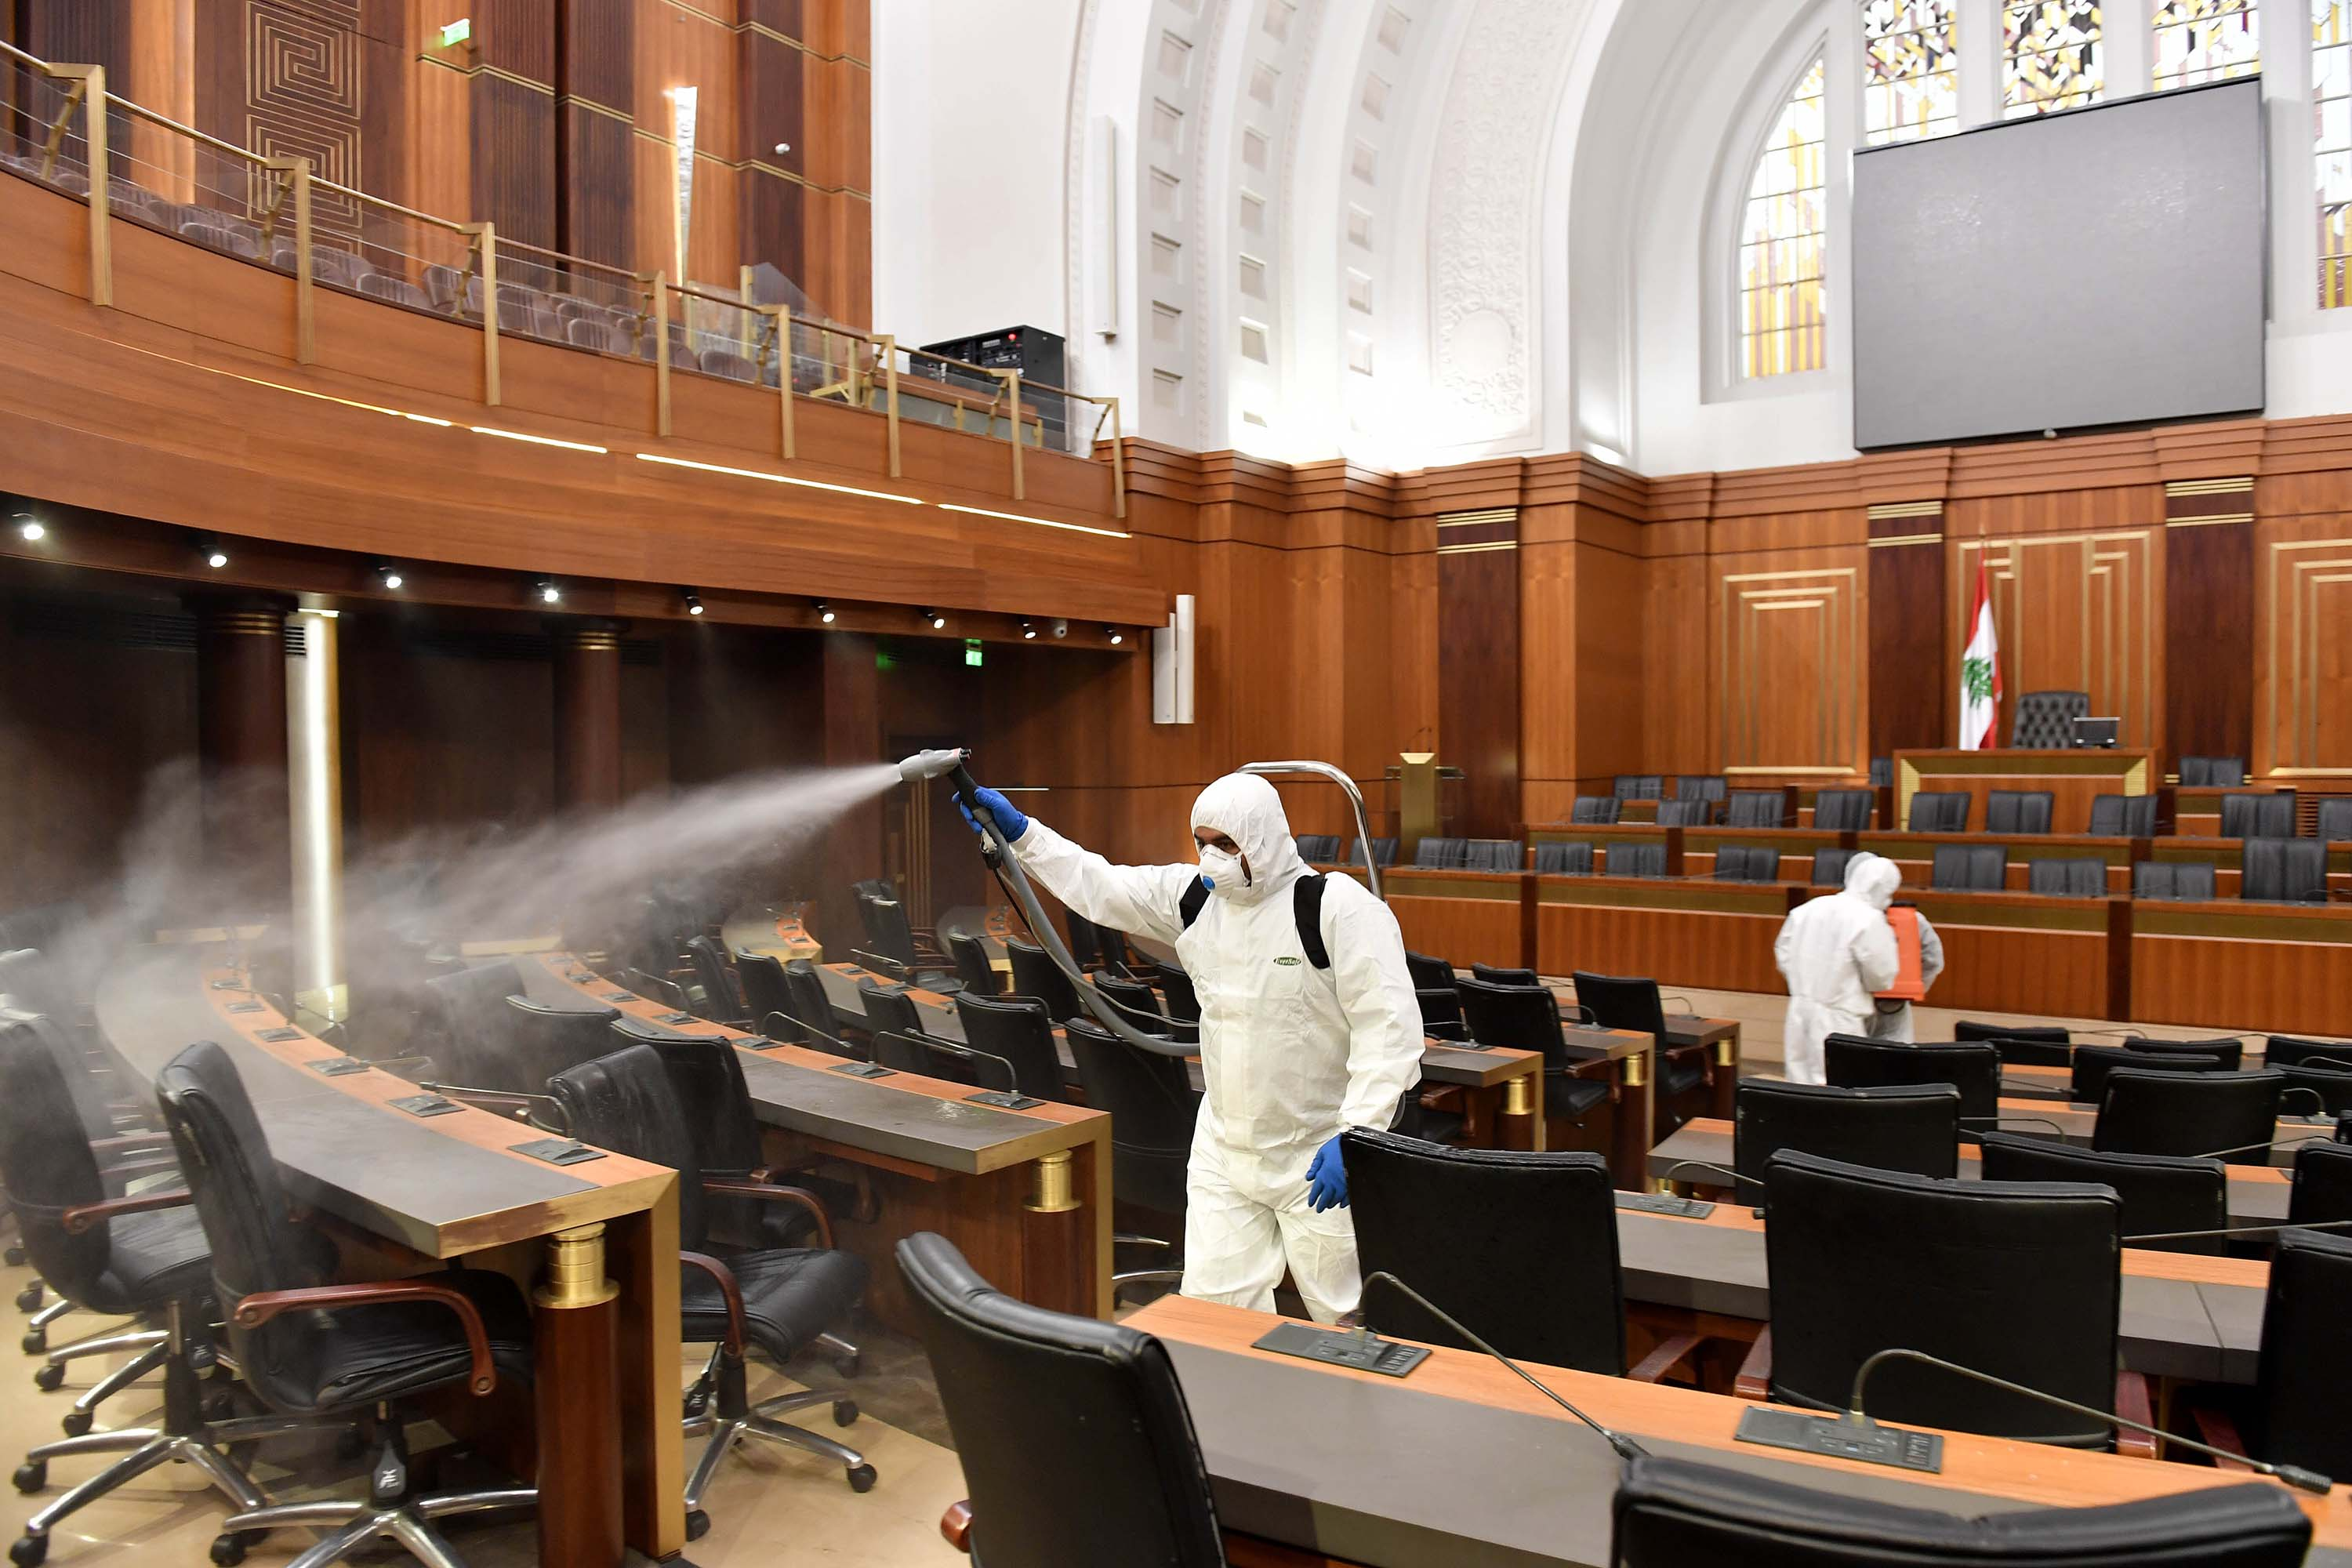 Health officials spray disinfectant at the Lebanese Parliament building in Beirut, Lebanon on Tuesday, as a precaution against the coronavirus.